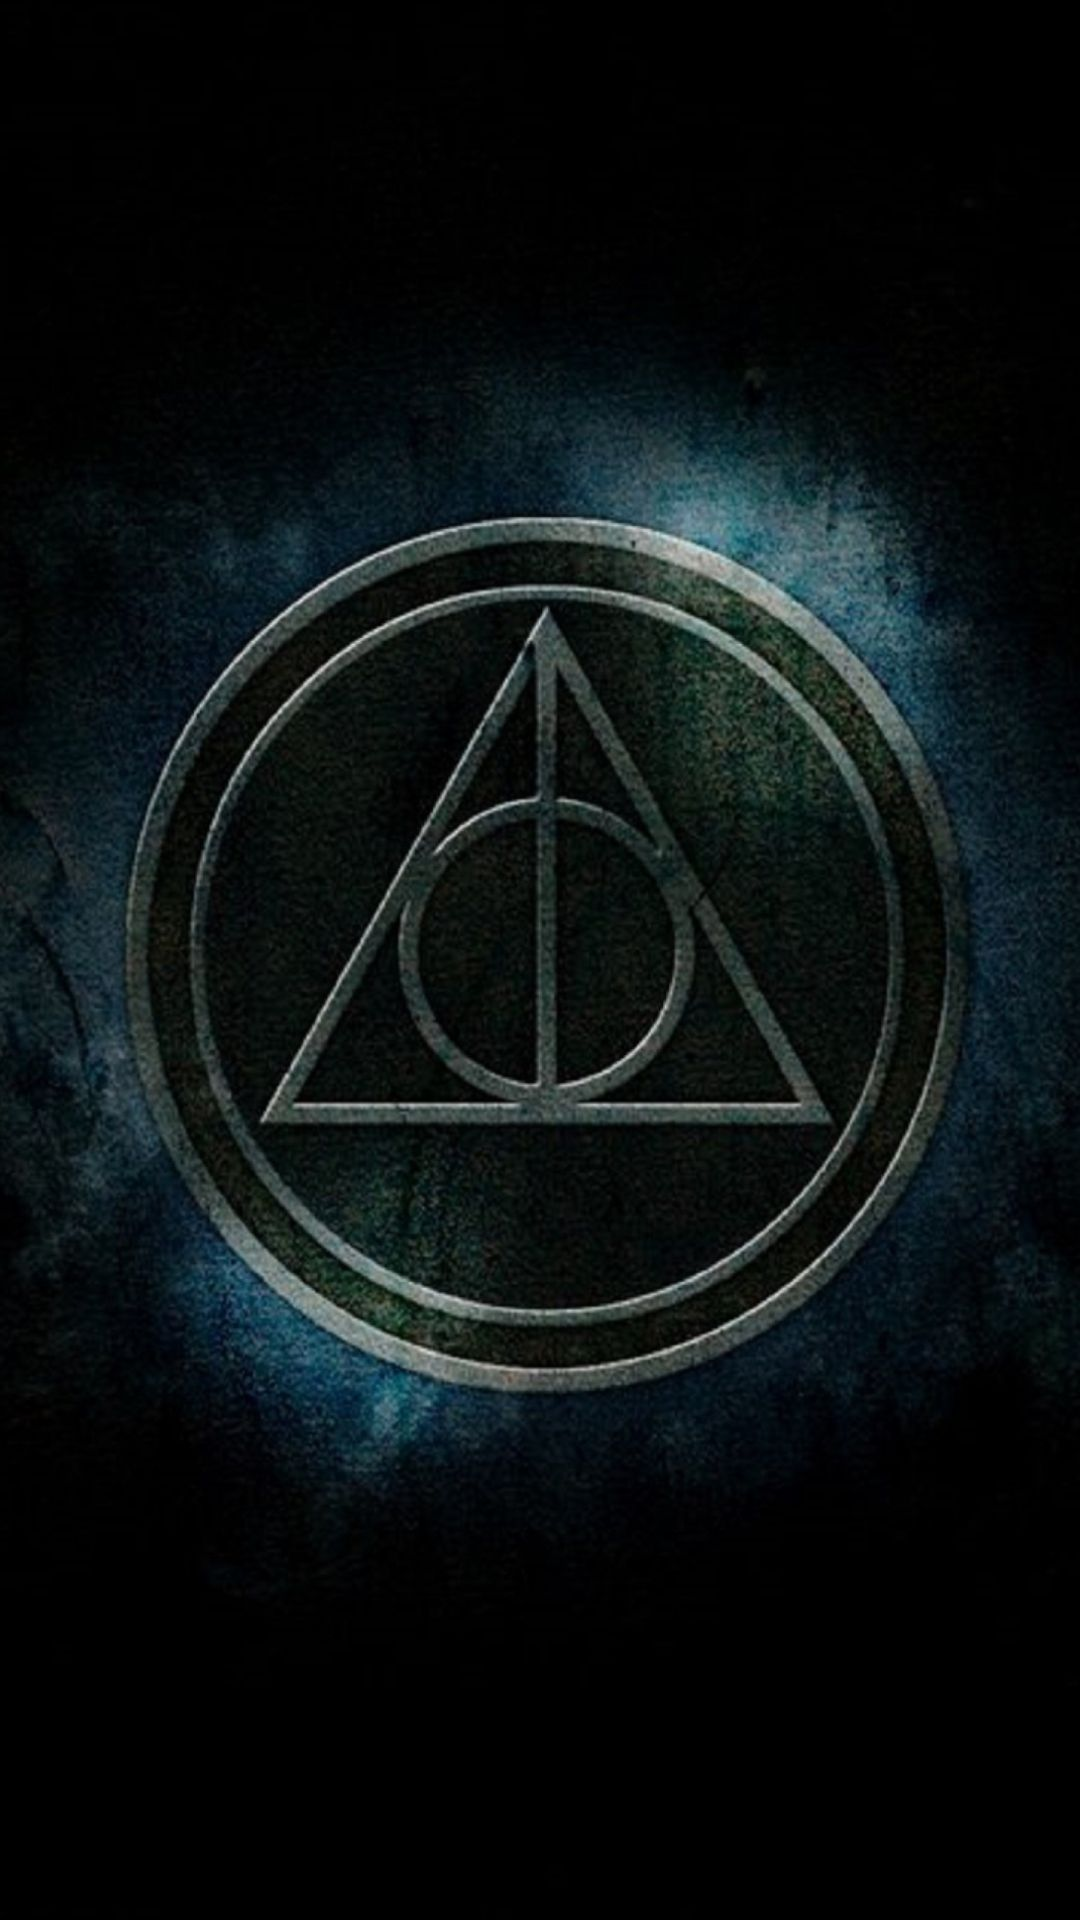 Harry Potter Deathly Hallows Tap to see awesome Harry